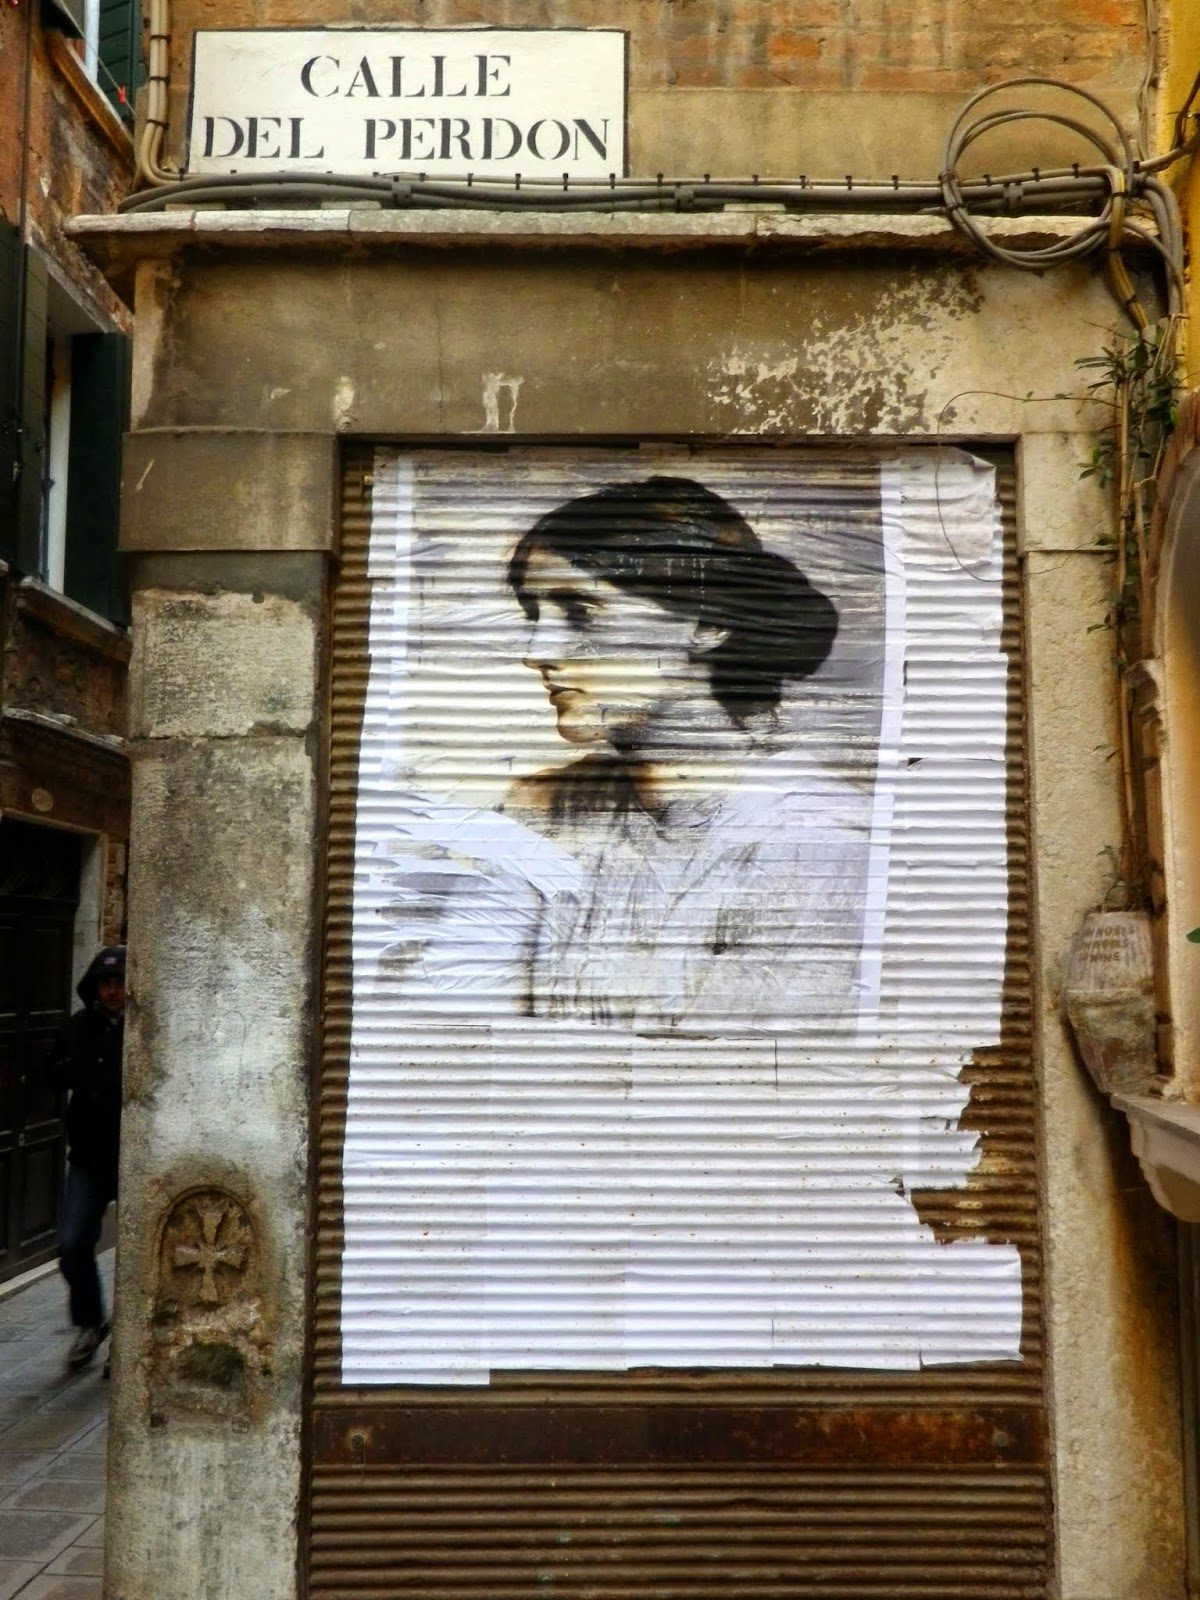 A poster of Virginia Woolf in the Calle del Perdon in Venice.